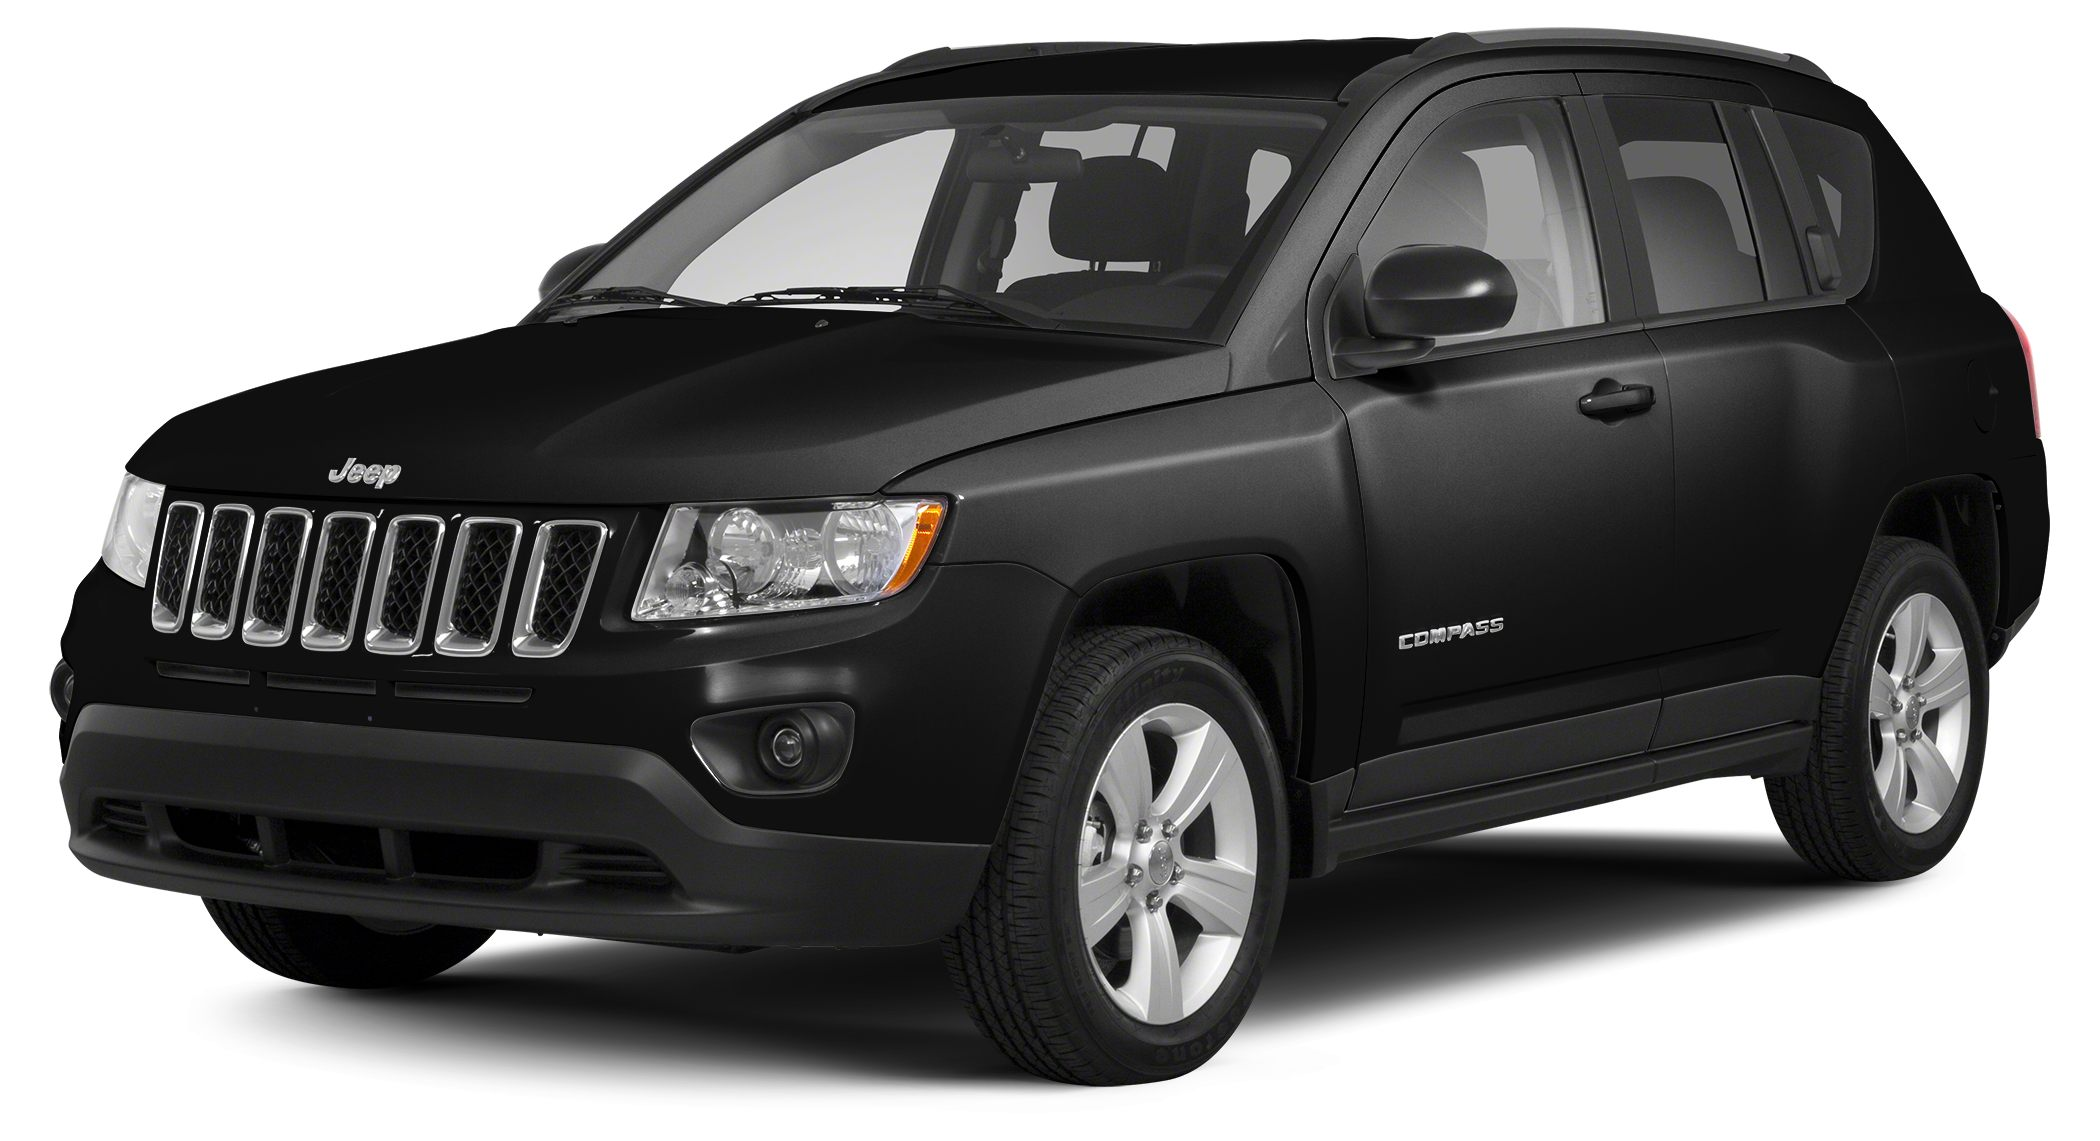 2013 Jeep Compass Latitude 200 below NADA Retail EPA 27 MPG Hwy21 MPG City CARFAX 1-Owner LO